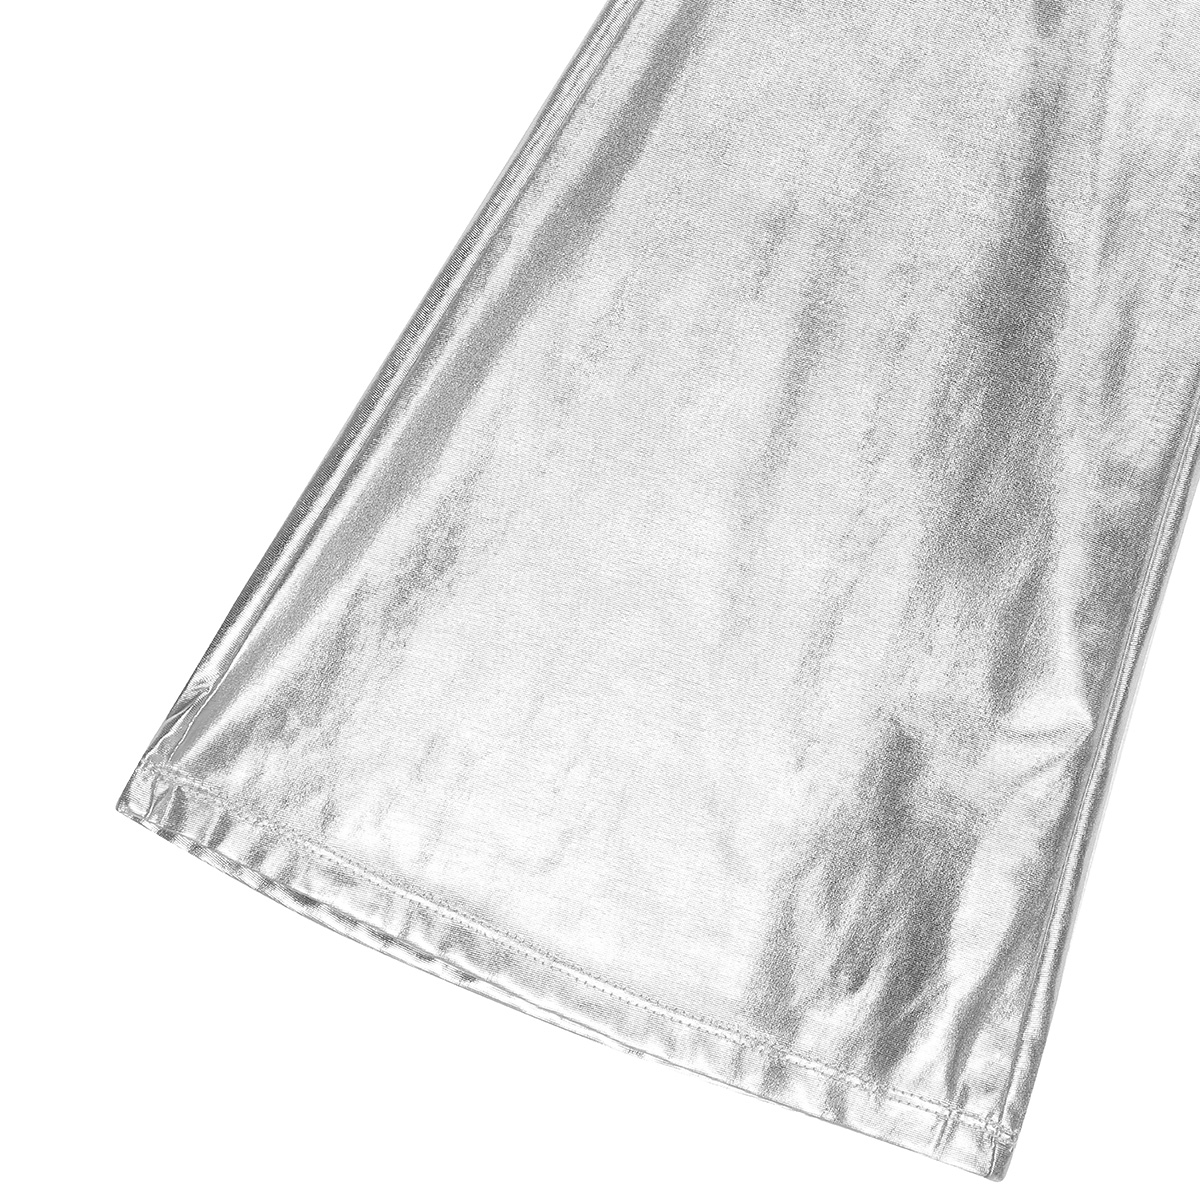 ChicTry Adults Mens Shiny Metallic Disco Pants with Bell Bottom Flared Long Pants Dude Costume Trousers for 70's Theme Parties 33